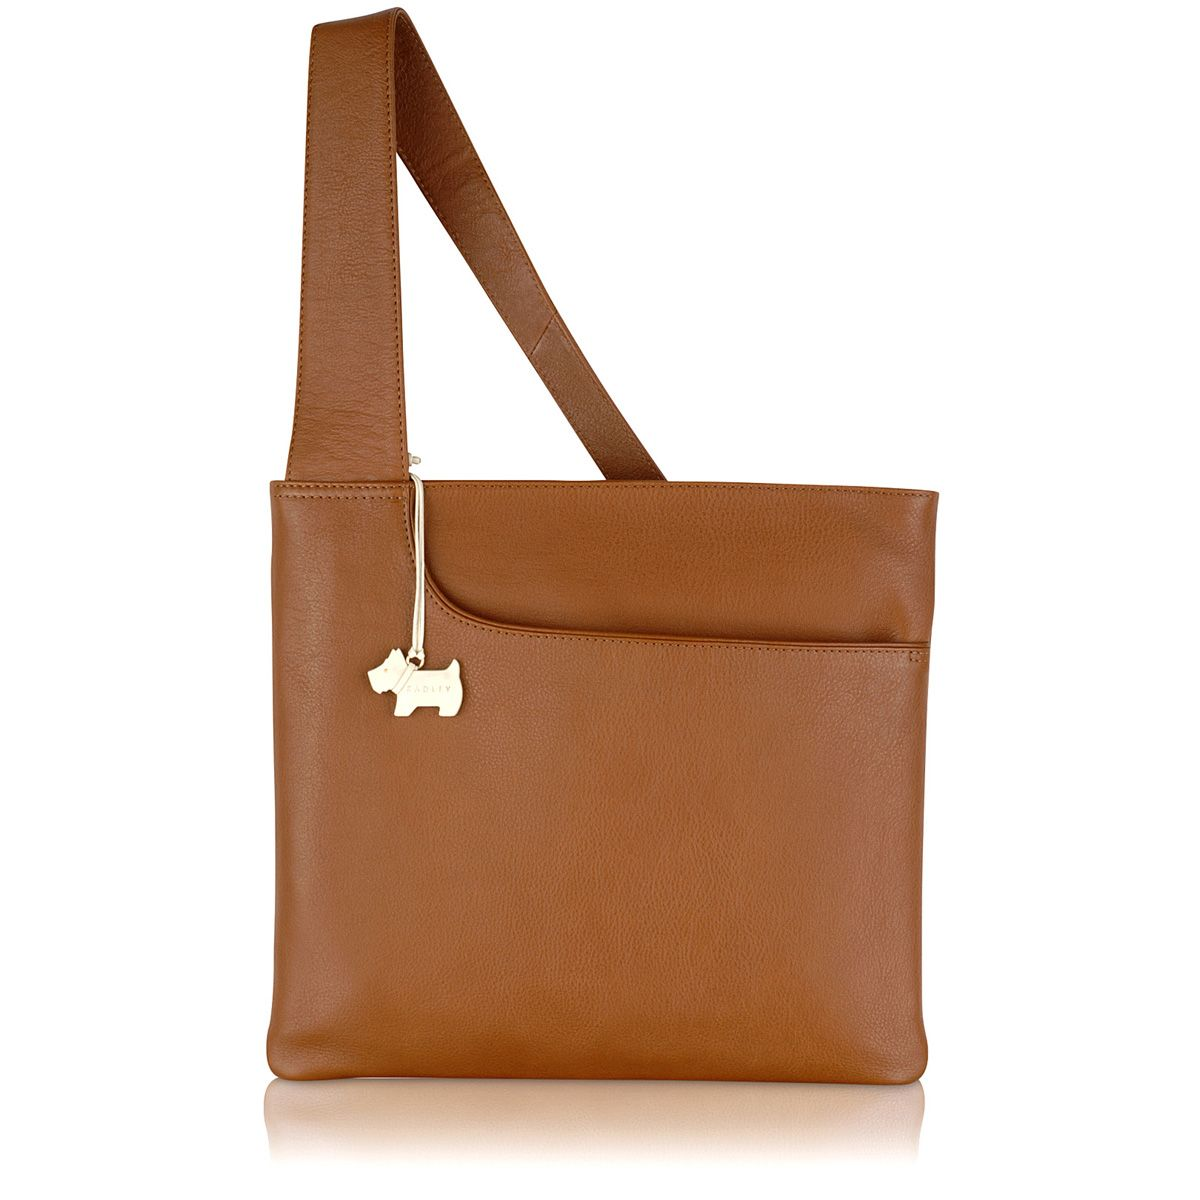 Radley Pocket bag large ziptop acrossbody bag Tan